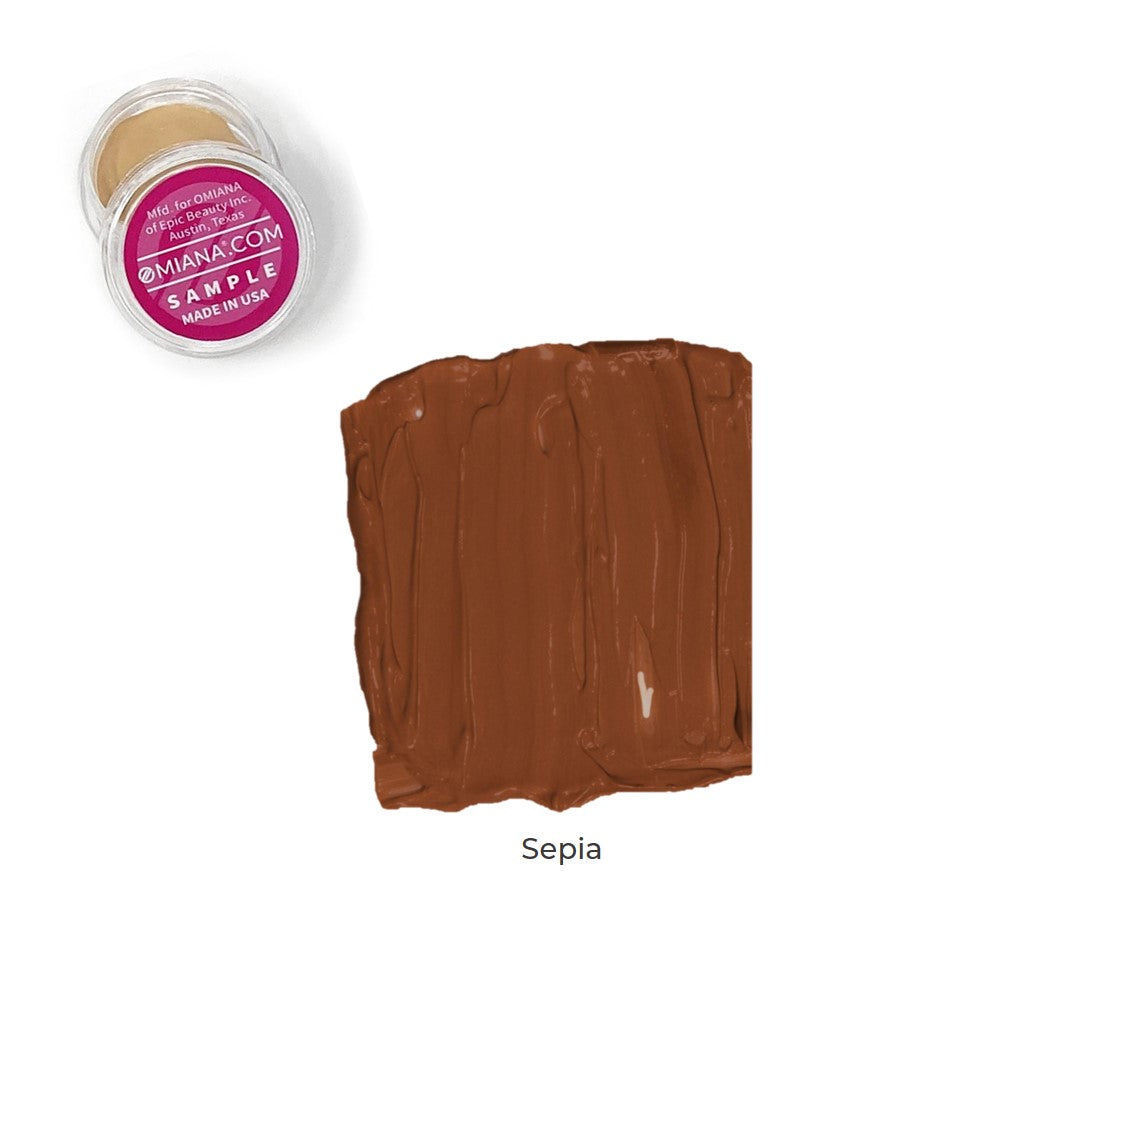 Velvet Matte Liquid Foundation Sample - Sepia